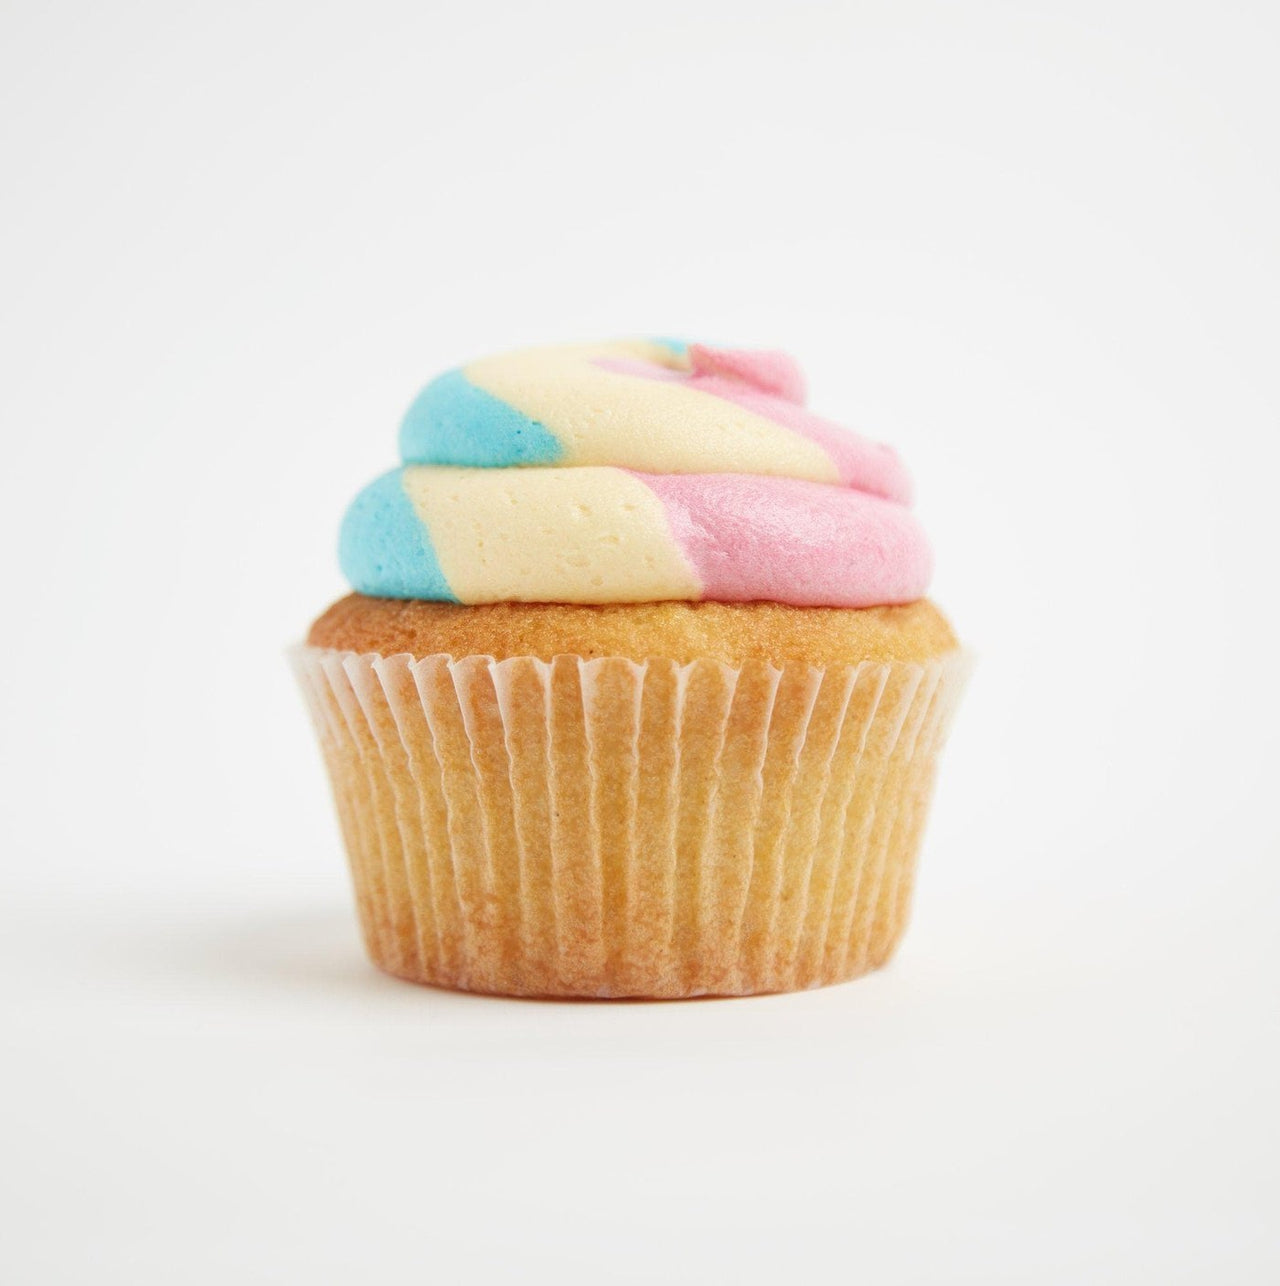 Rainbow Cupcakes by Crumbs & Doilies